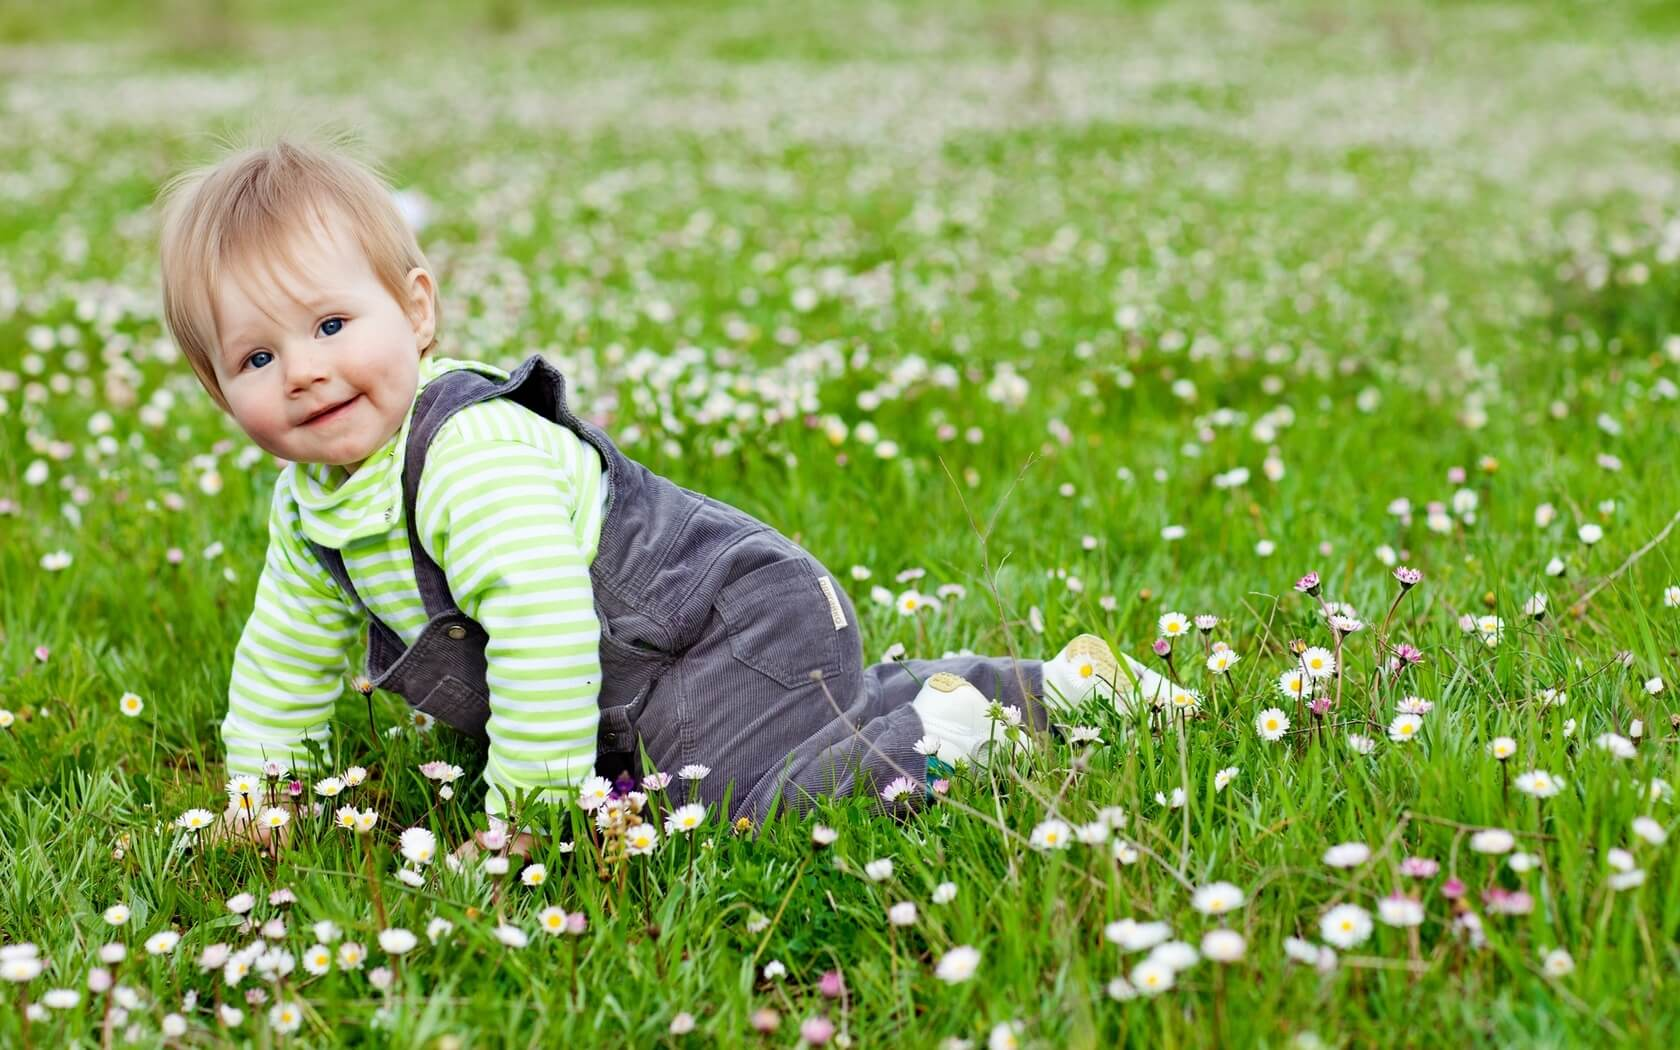 cute_lovely_baby_play_in_garden-1680x1050